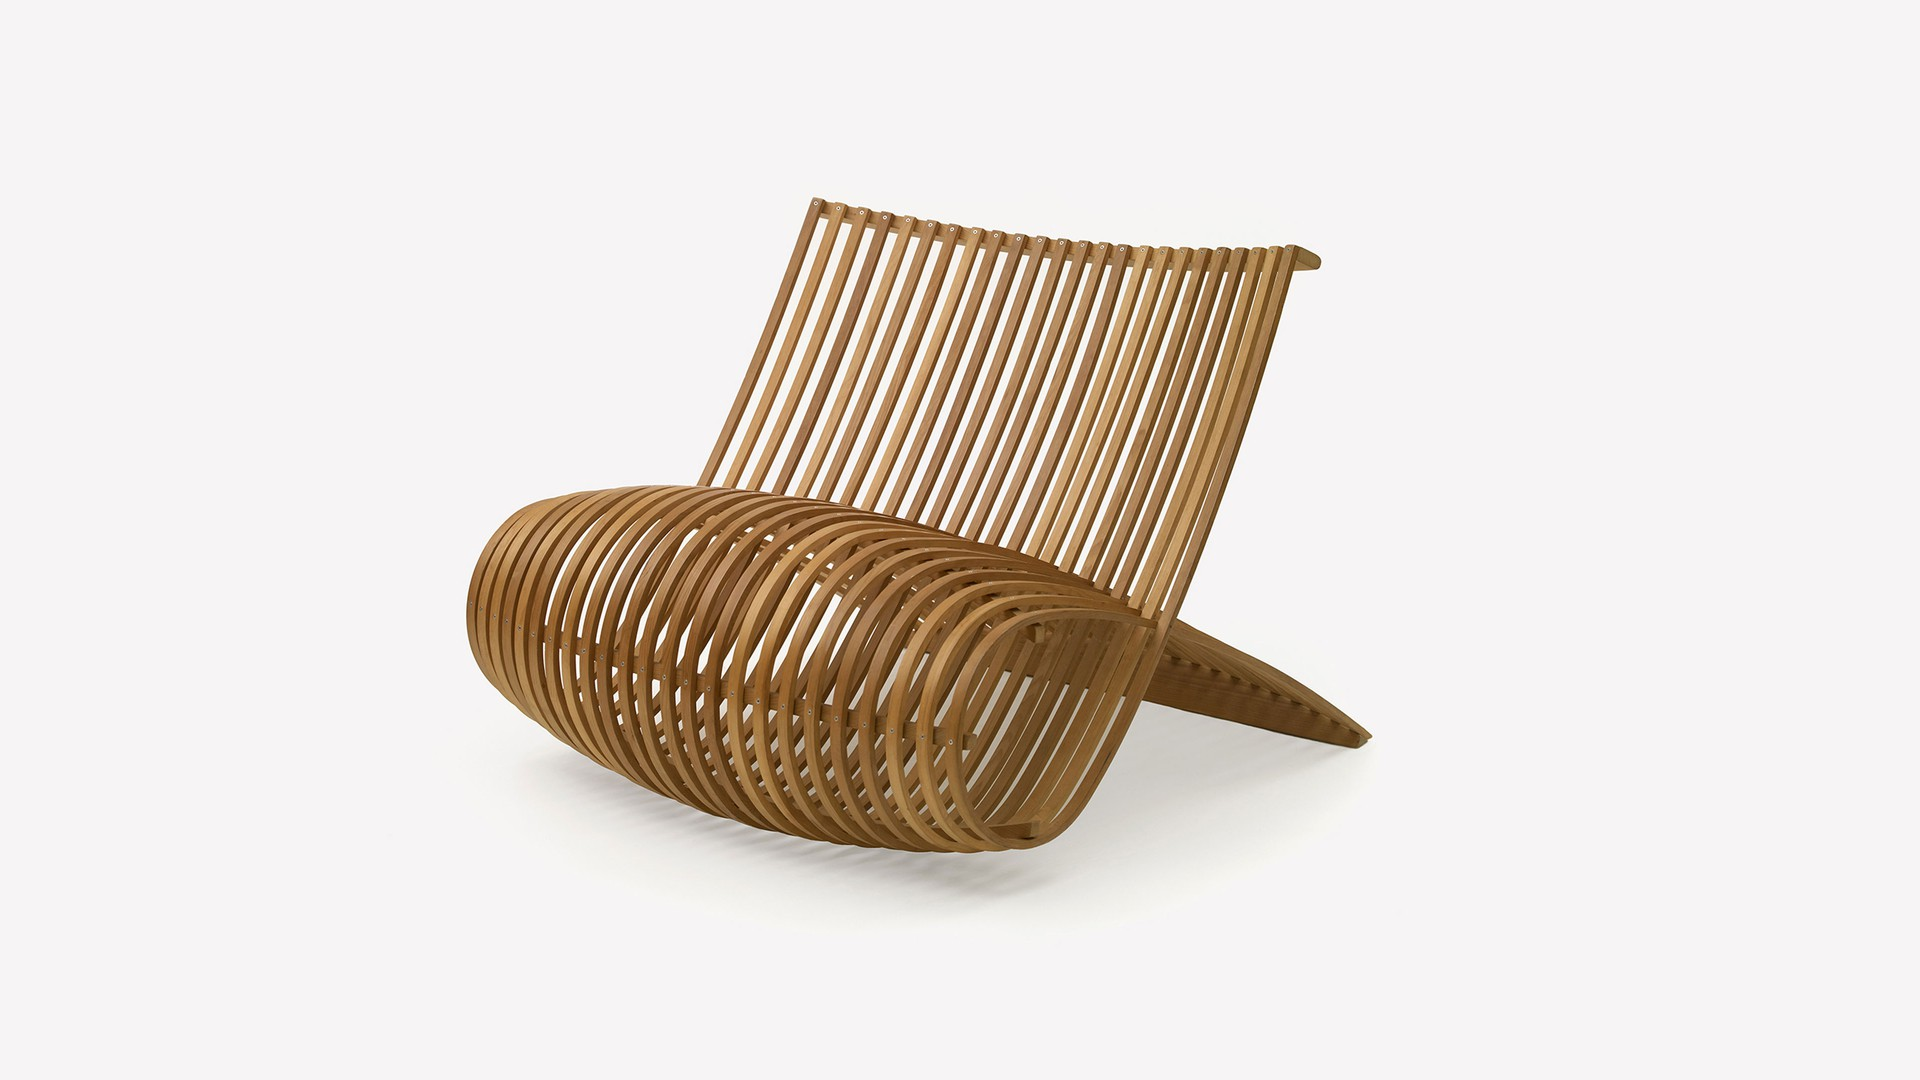 Chair Wooden Wood Chair Marc Newson Ltd